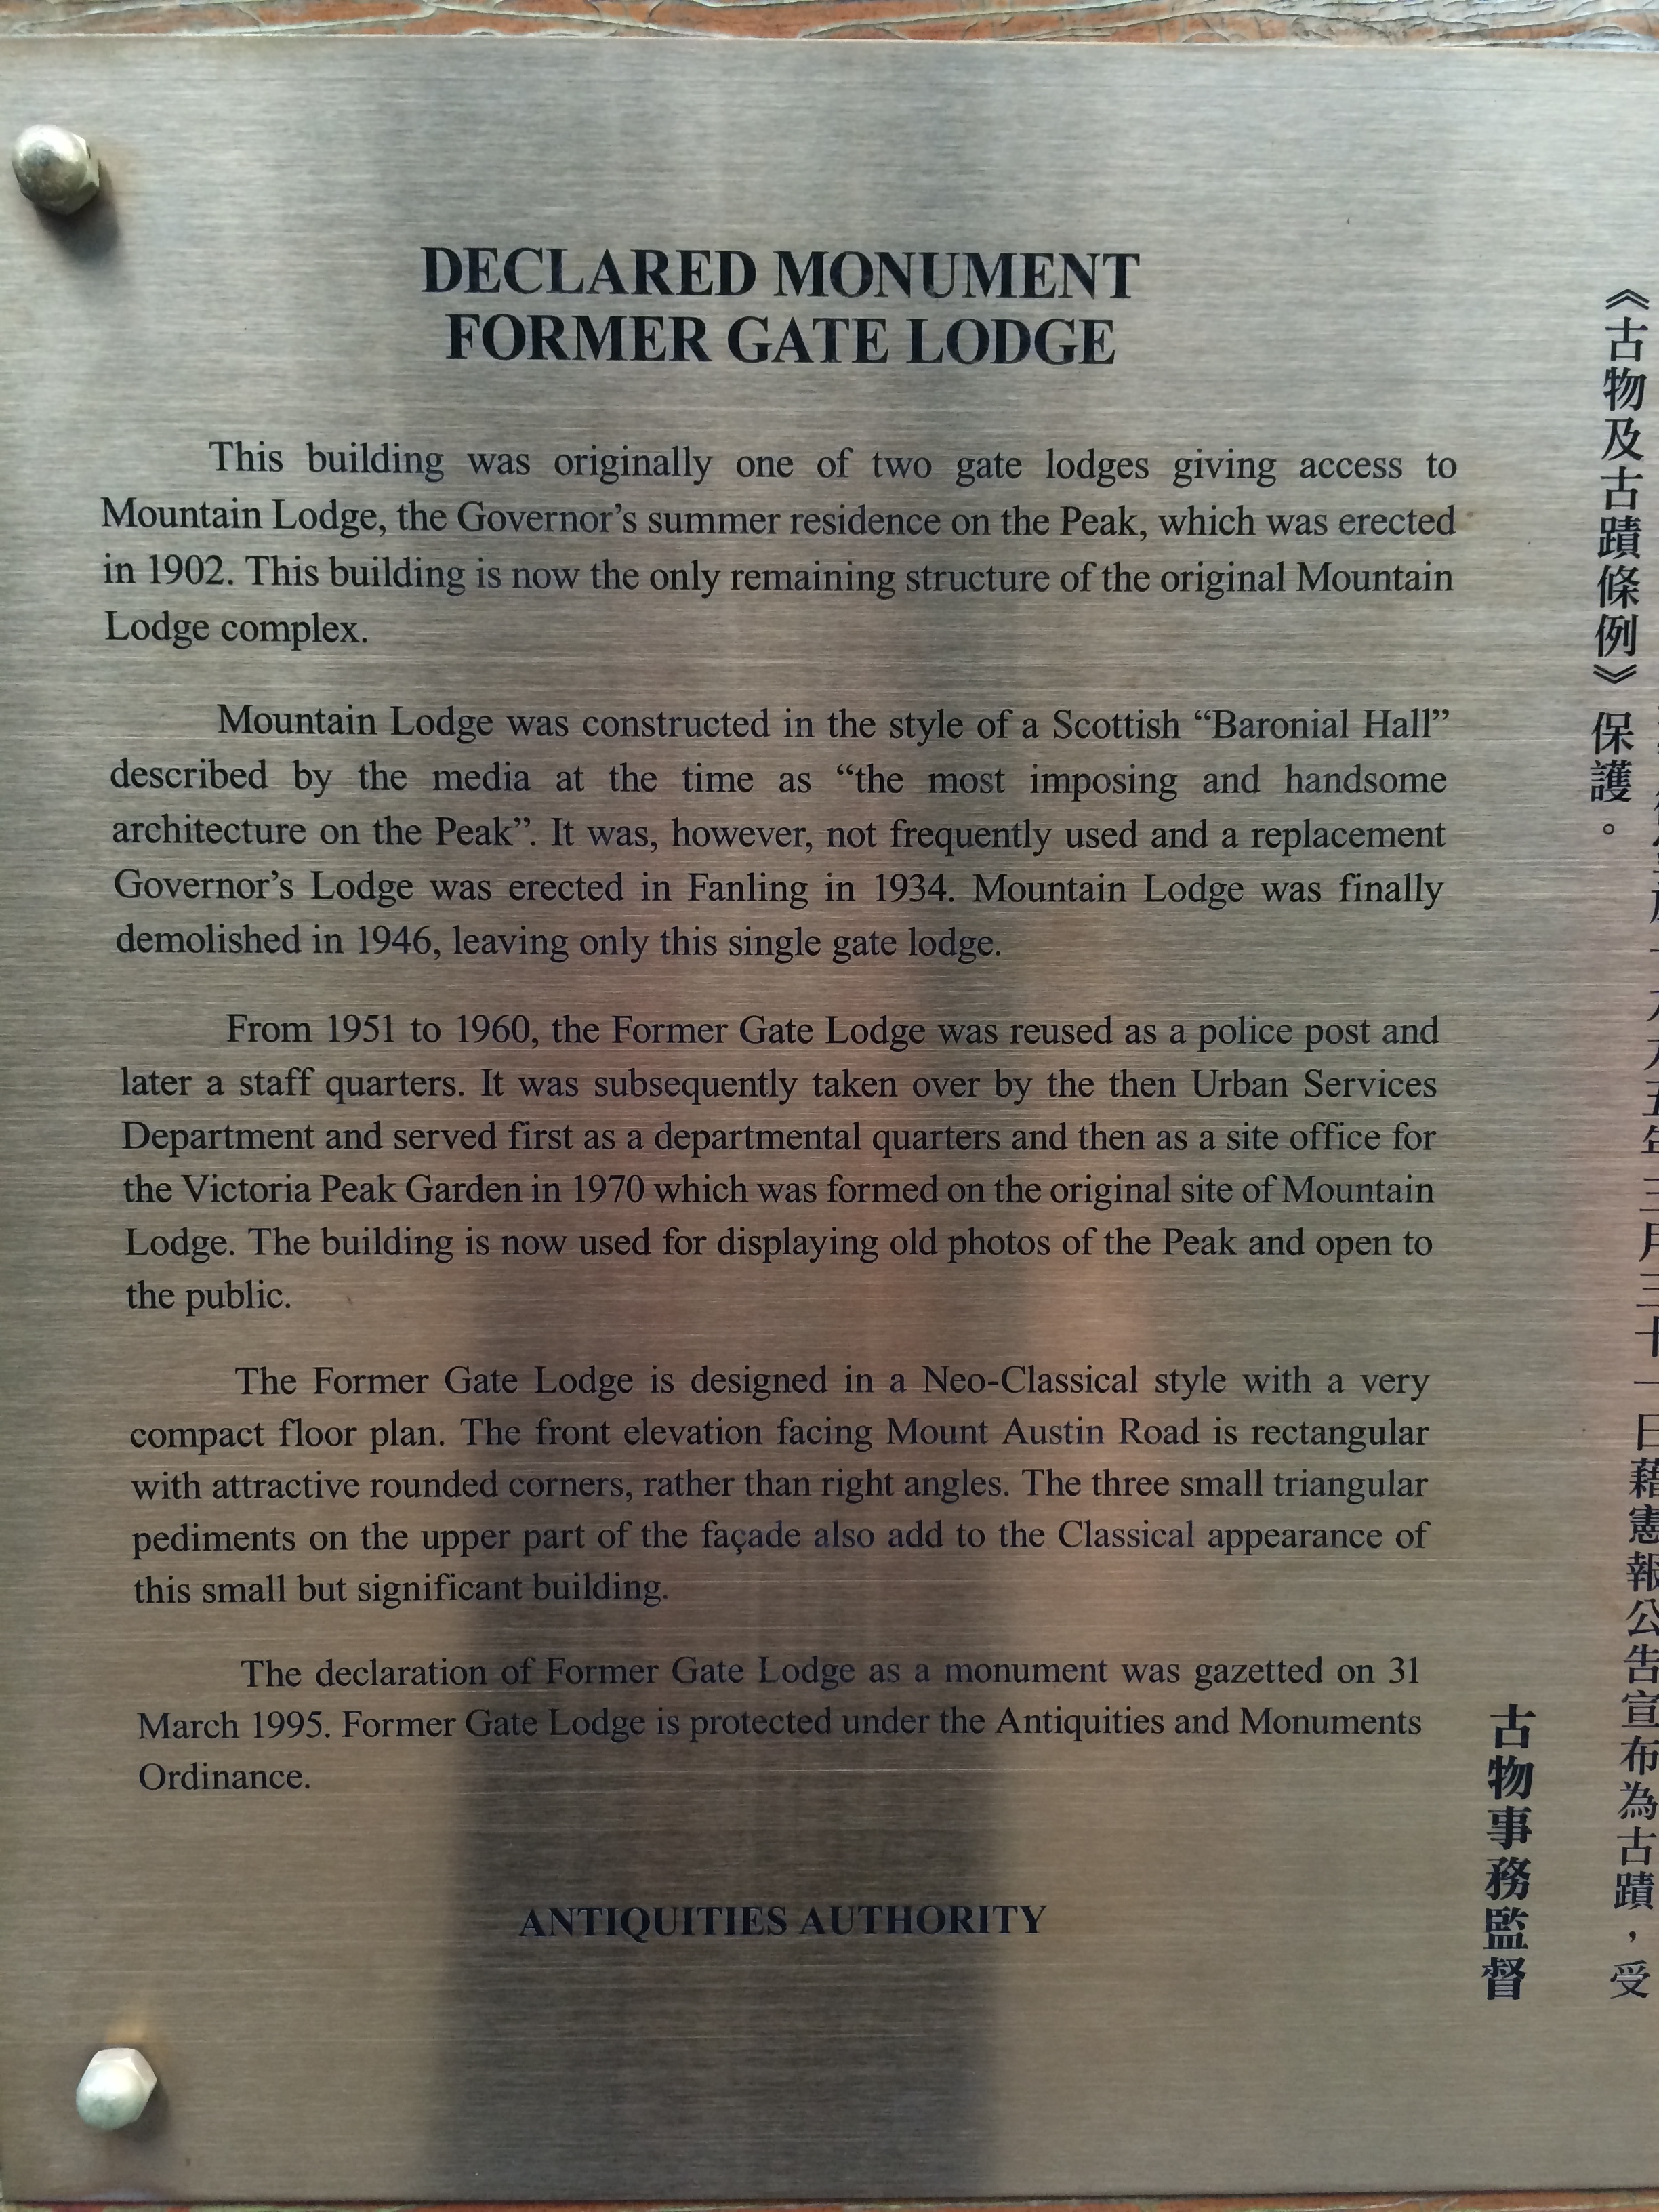 More info on the Gate Lodge © Traverate